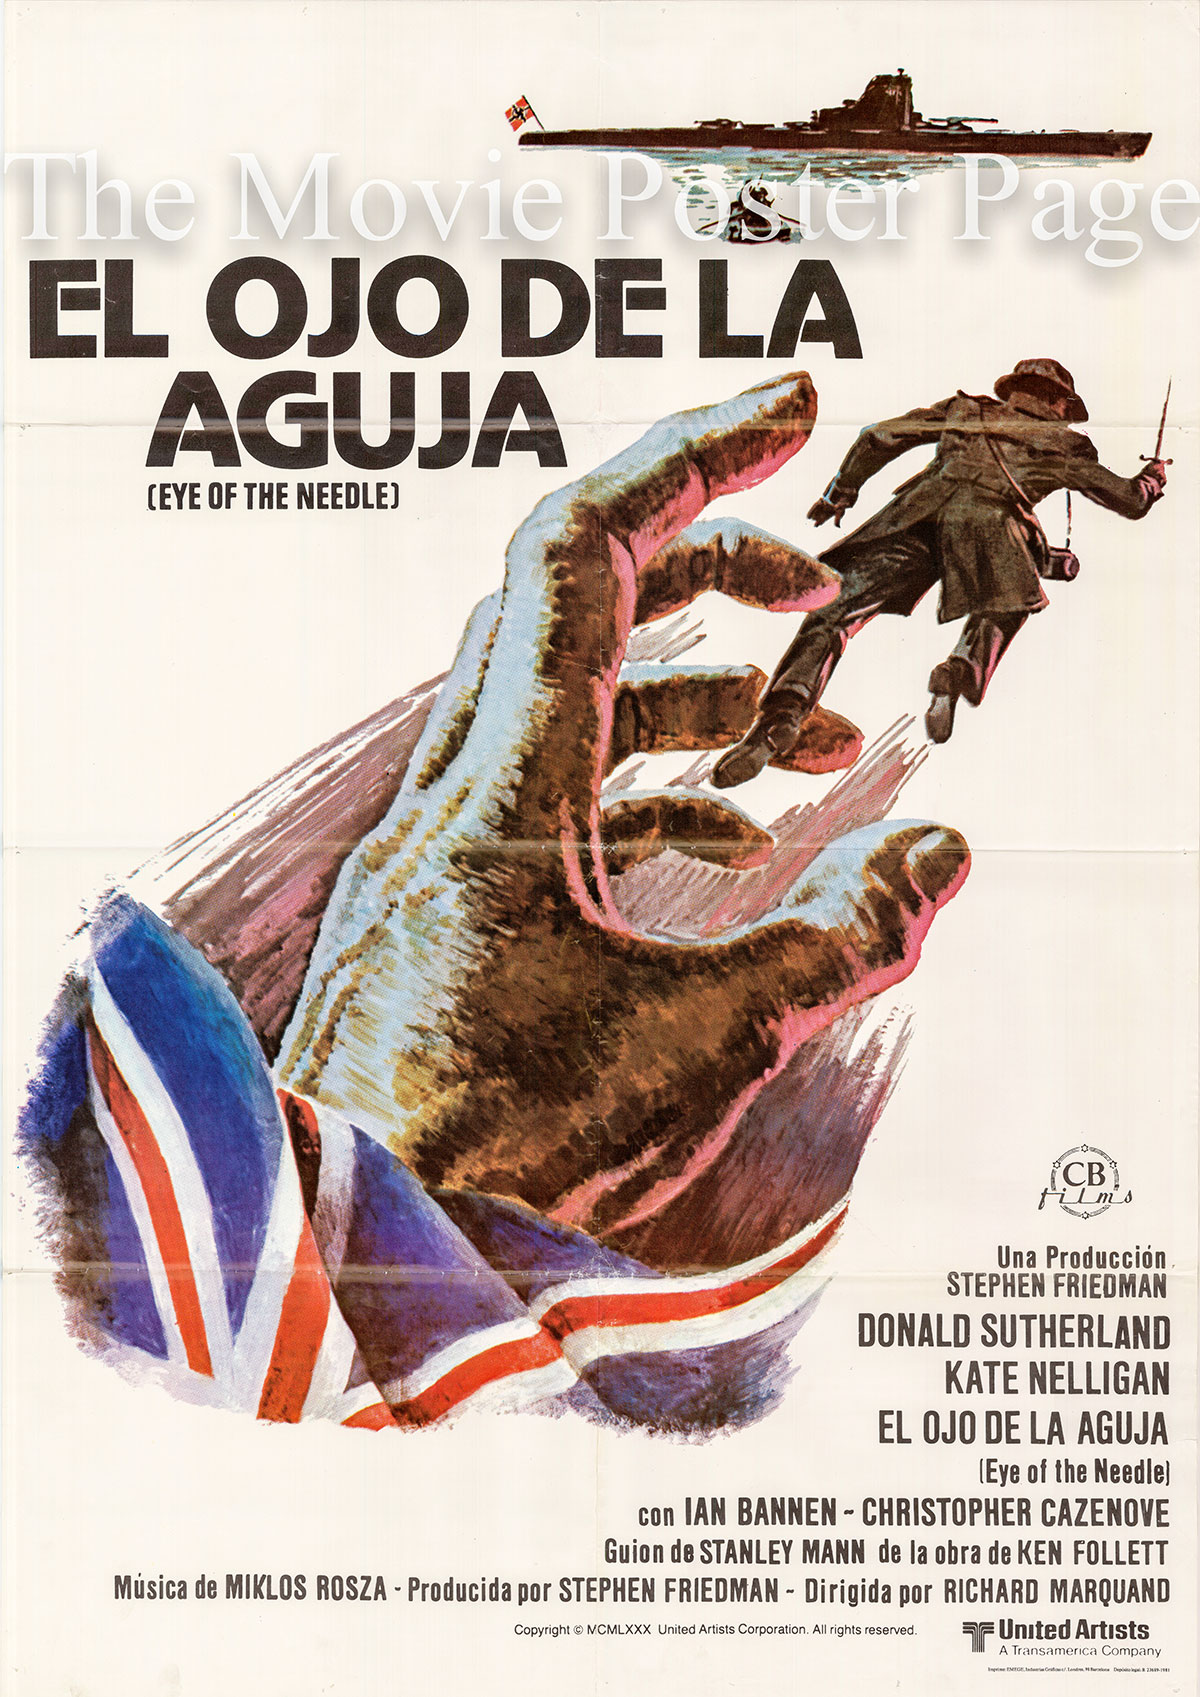 Pictured is a Spanish one-sheet promotional poster for the 1981 Richard Marquand film Eye of the Needle starring Donald Sutherland.